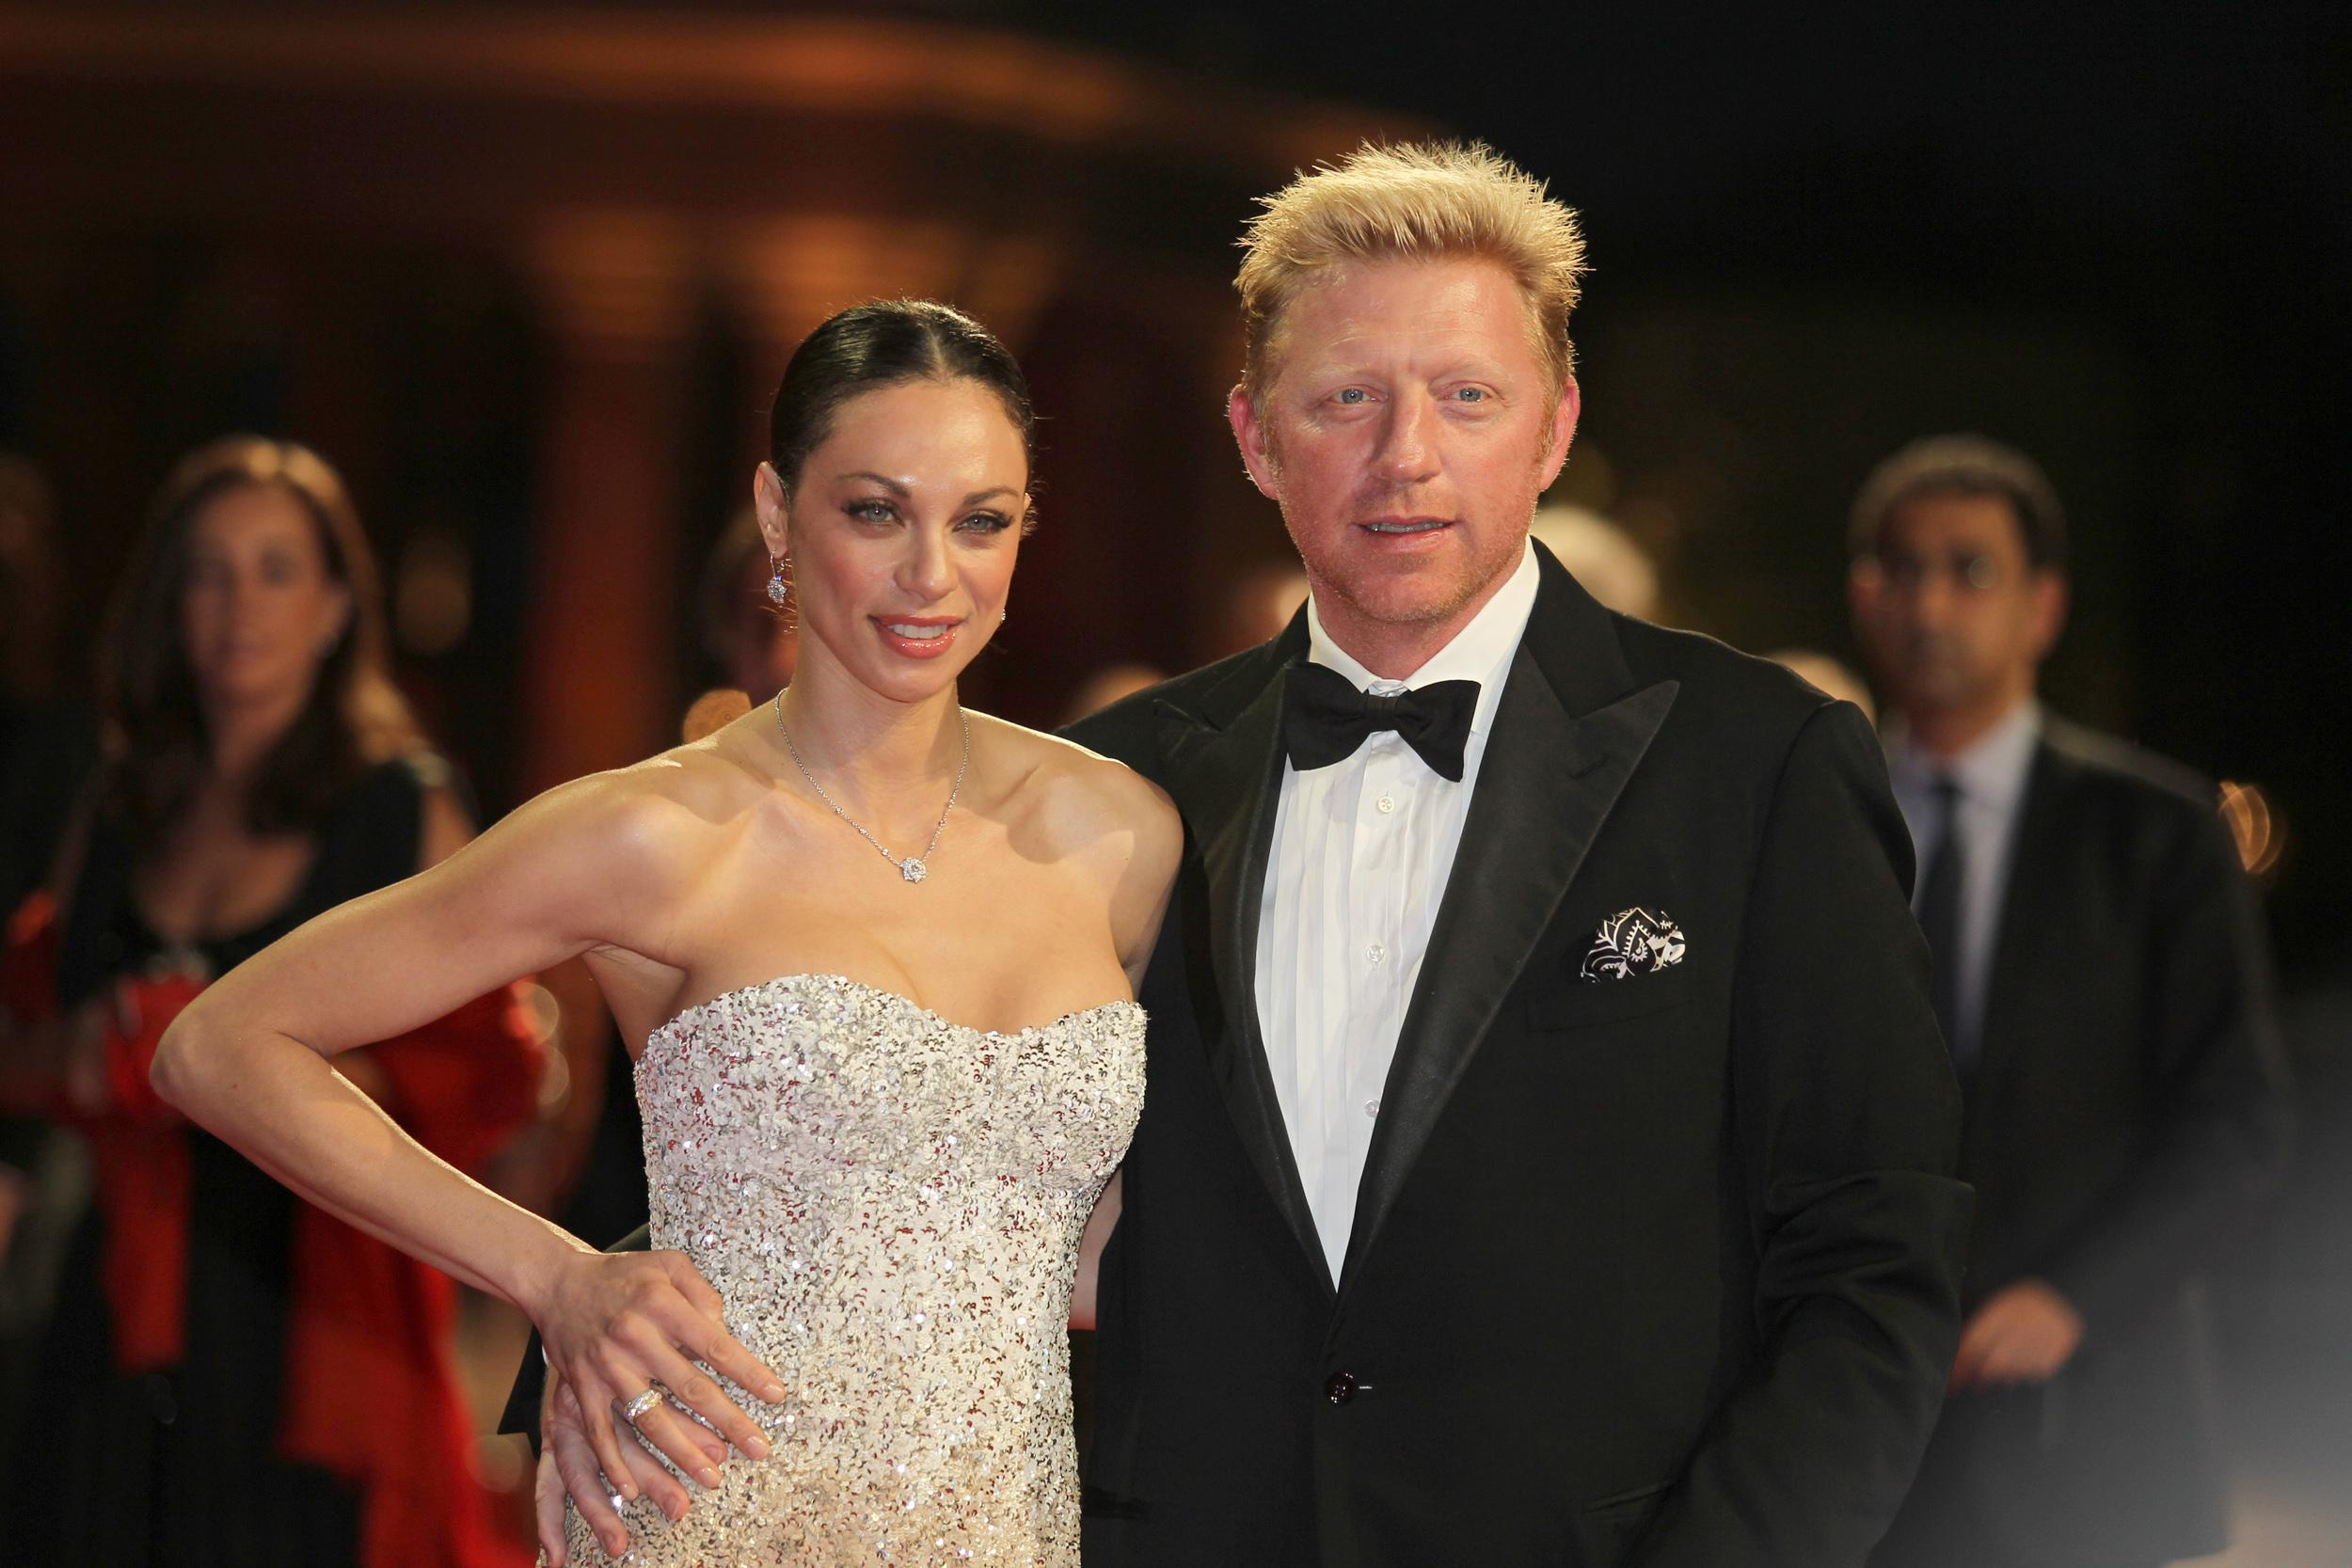 Former German tennis star Boris Becker and his wife Lilly have separated